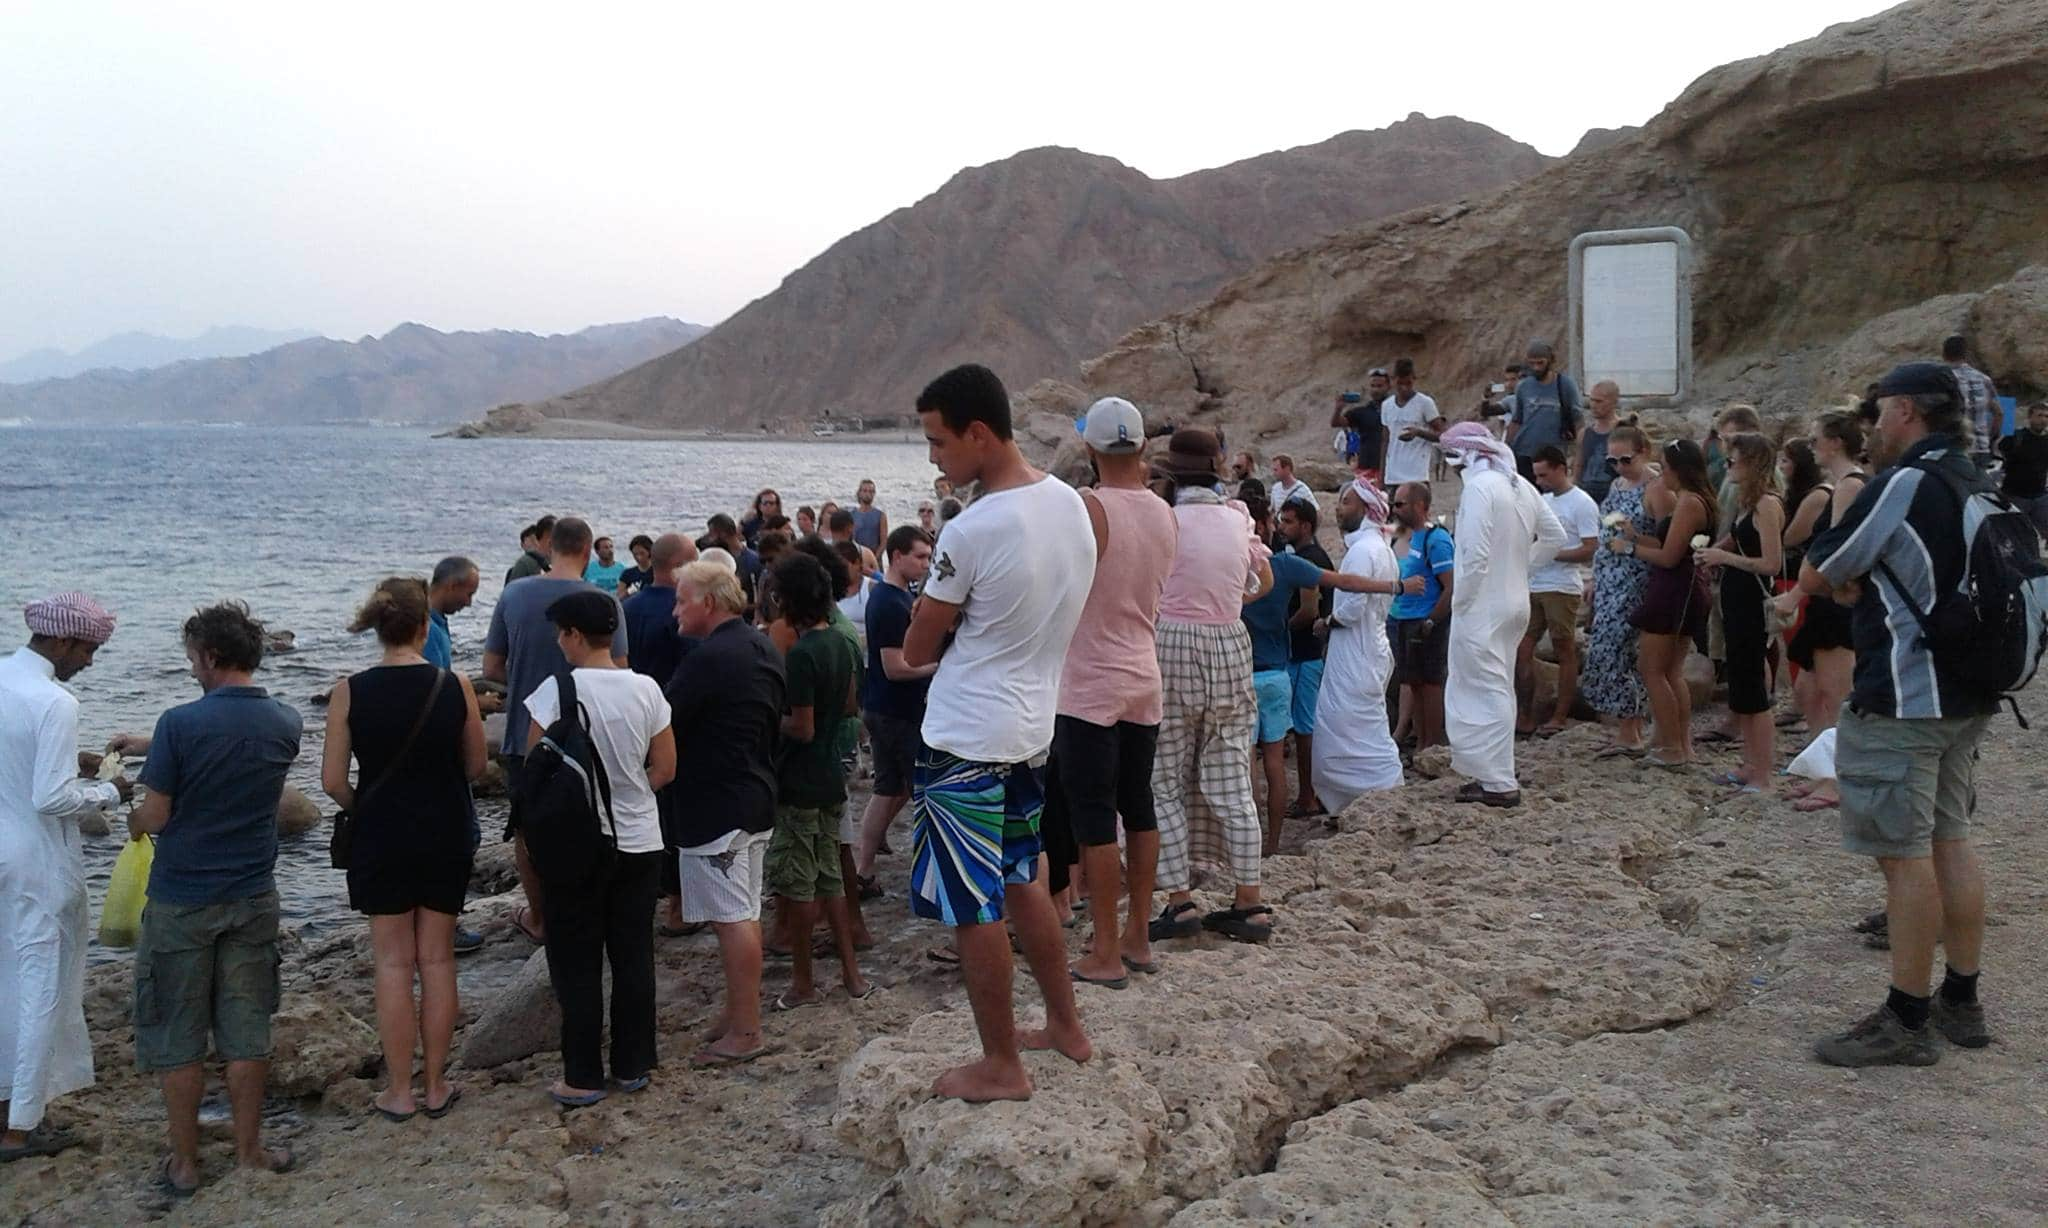 A memorial gathering at the Blue Hole in Dahab to pay tribute to Stephen Keenan. (photo by Olivier Server)